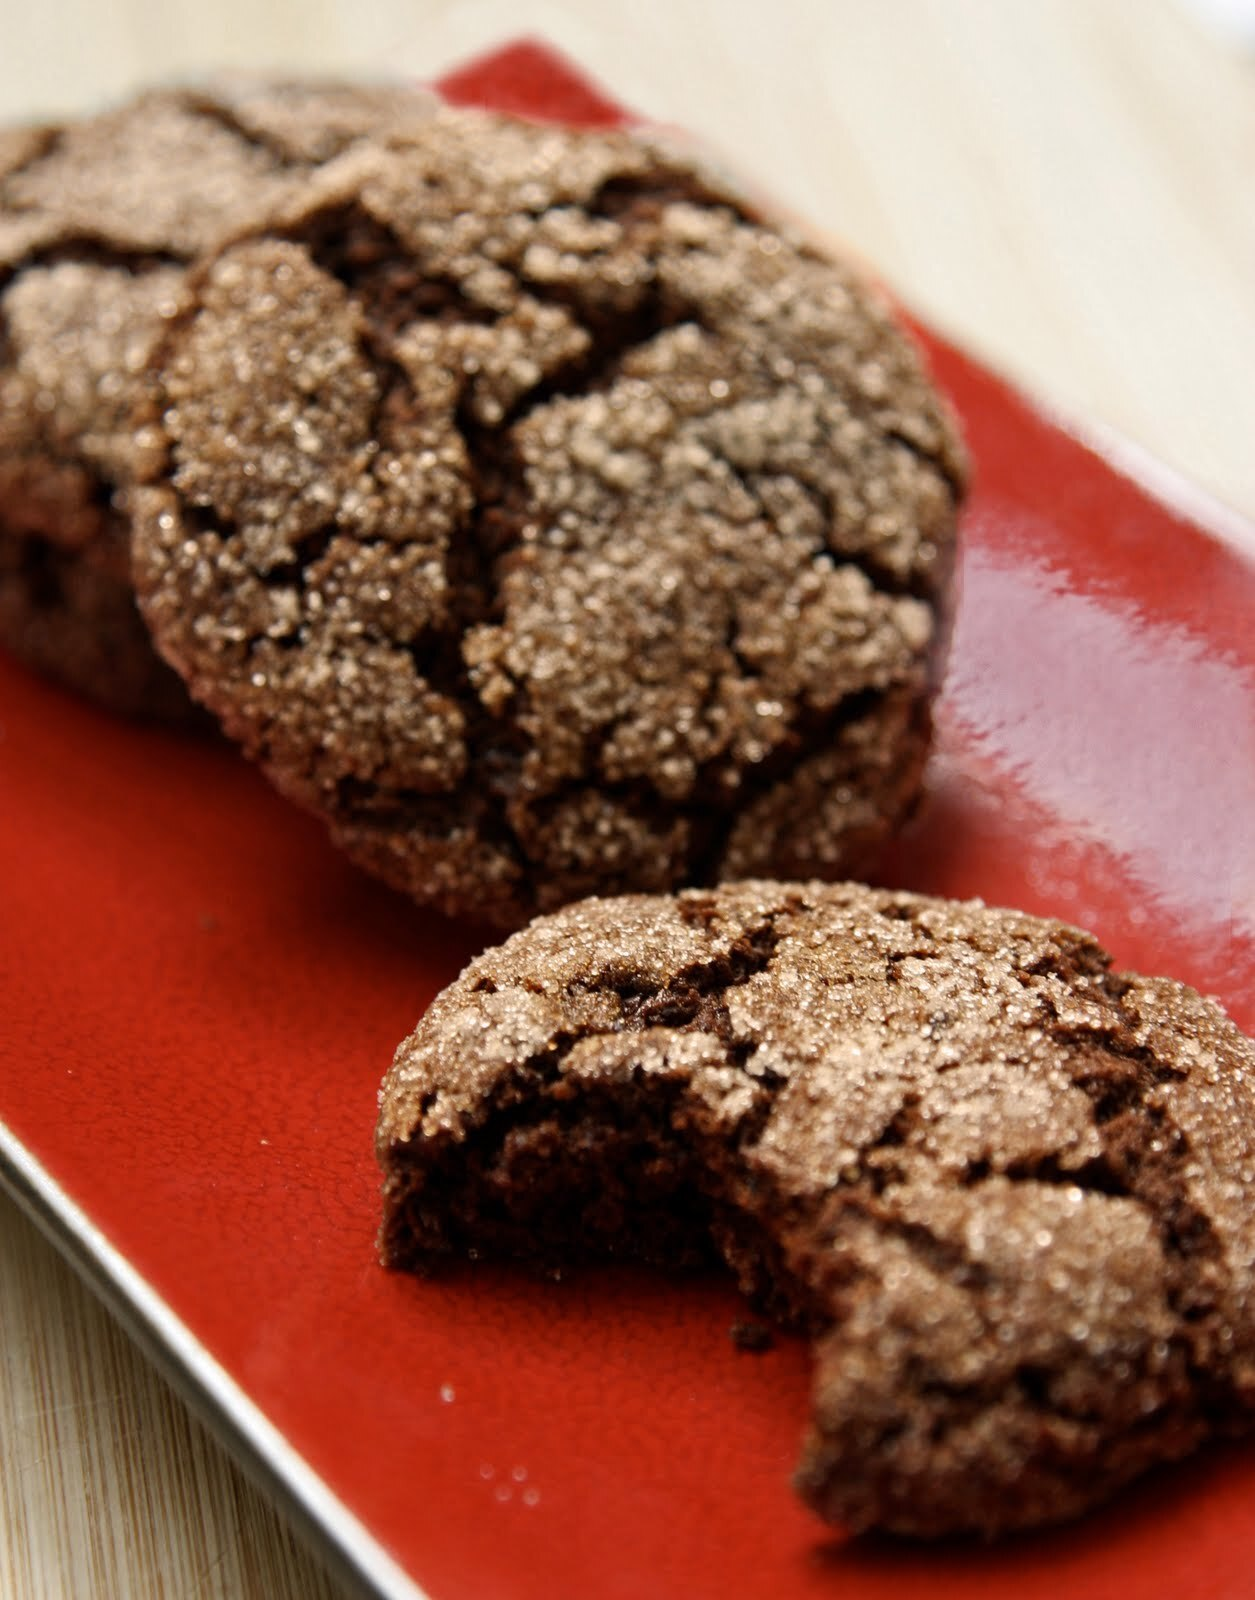 spicy, chewy ginger cookies